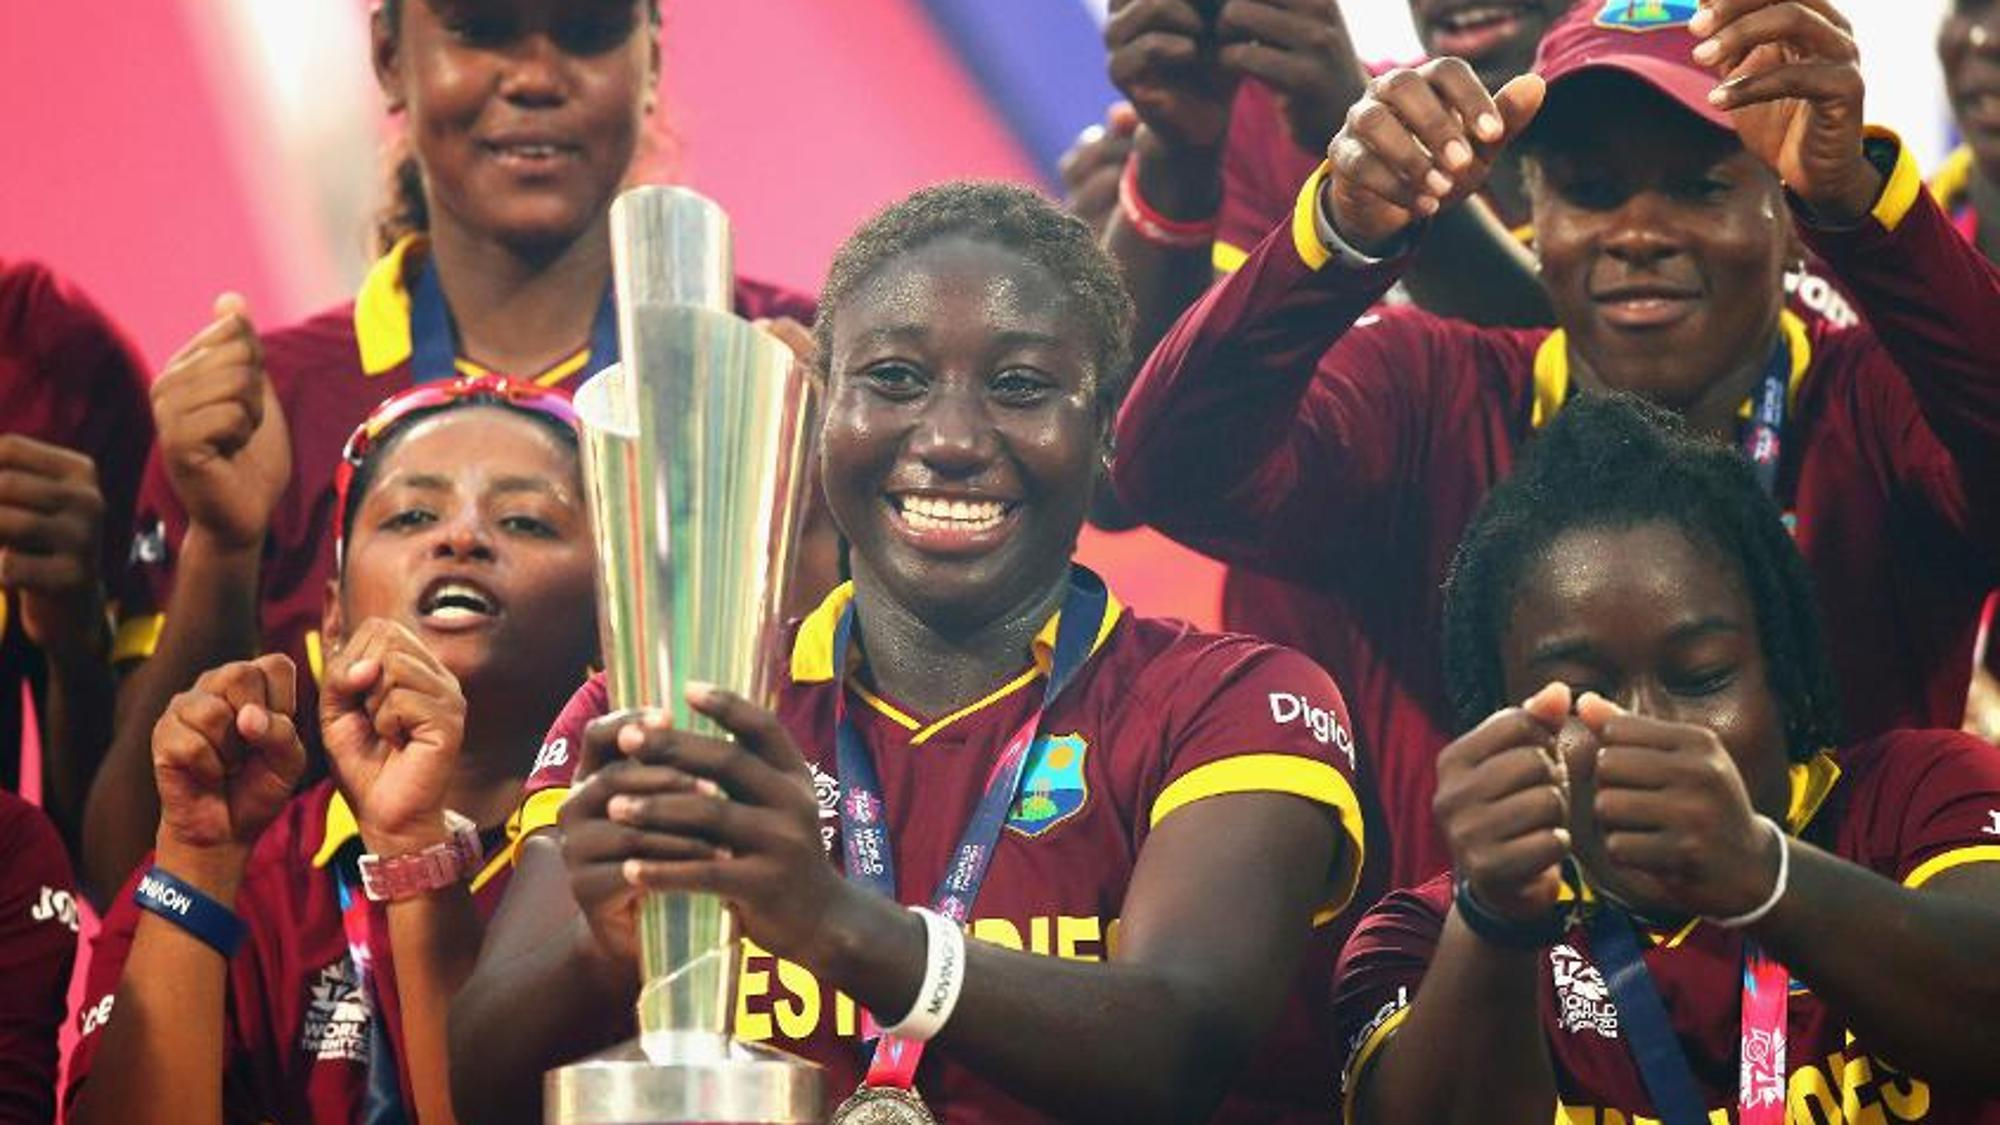 Get your tickets for ICC Women's World T20 2018